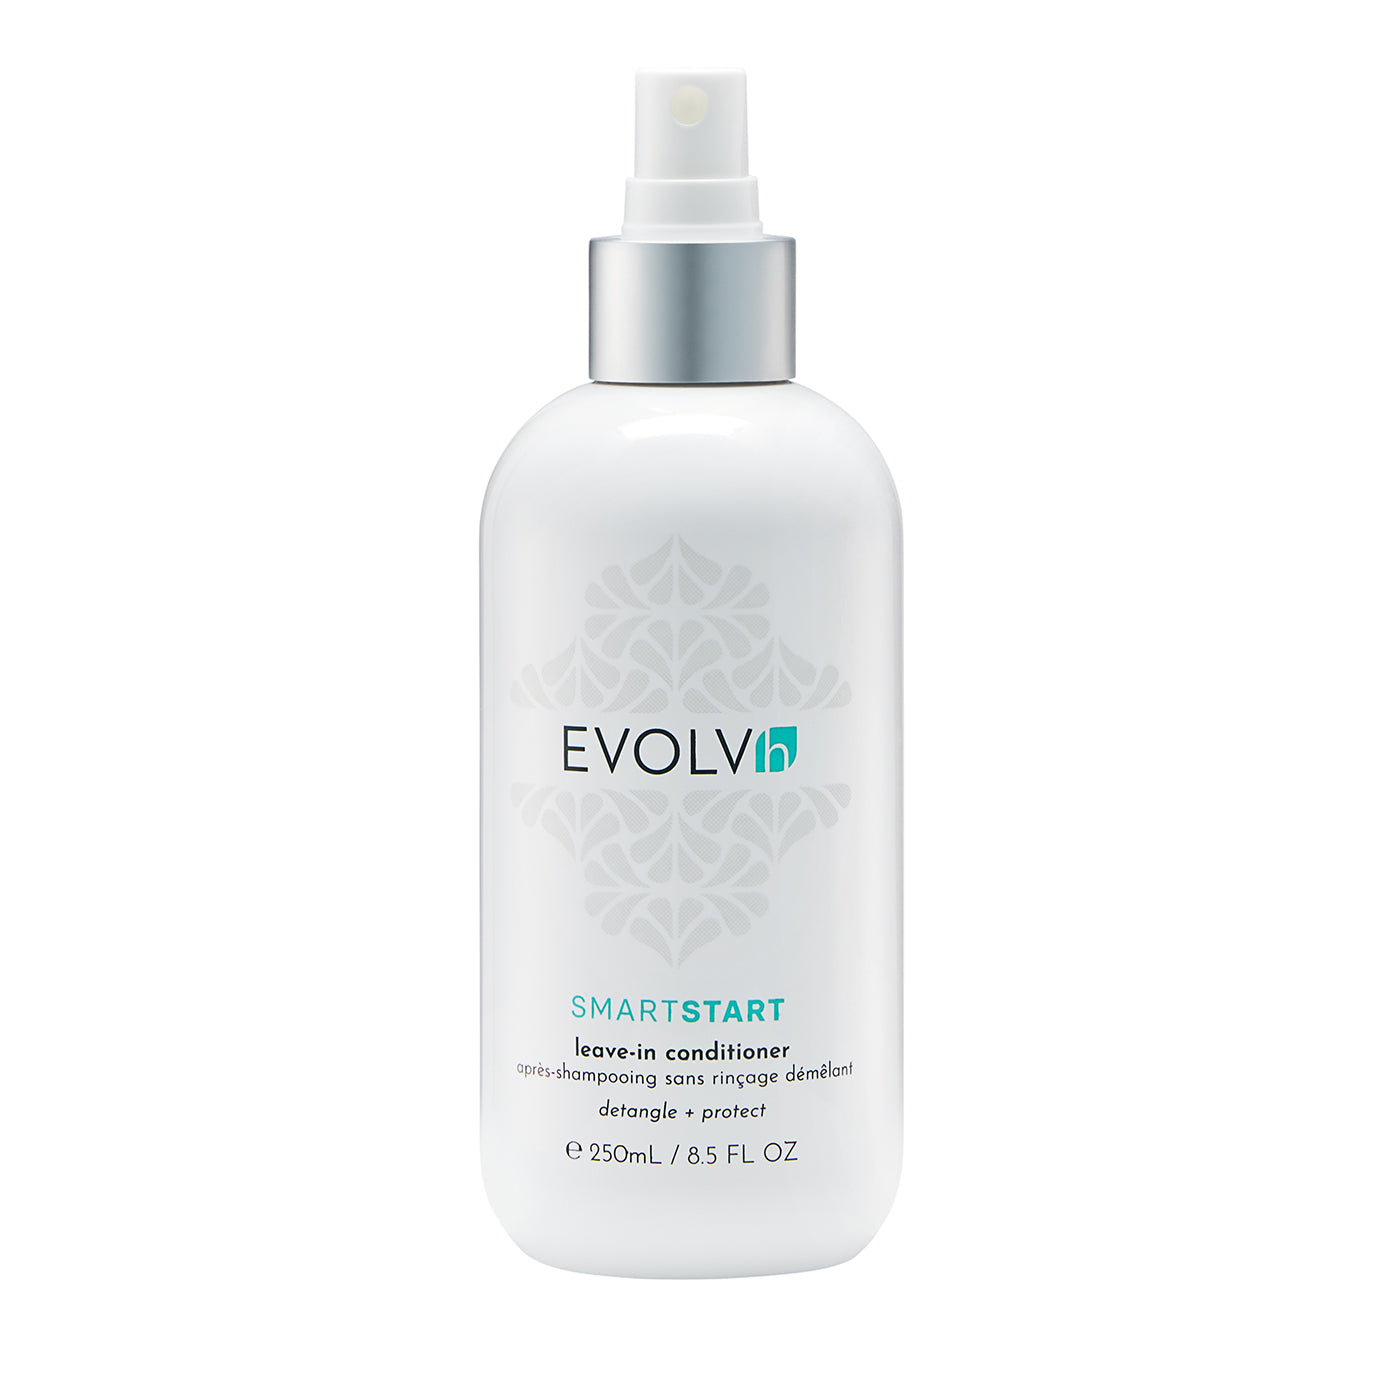 EVOLVh SmartStart Leave-In Conditioner & Detangler